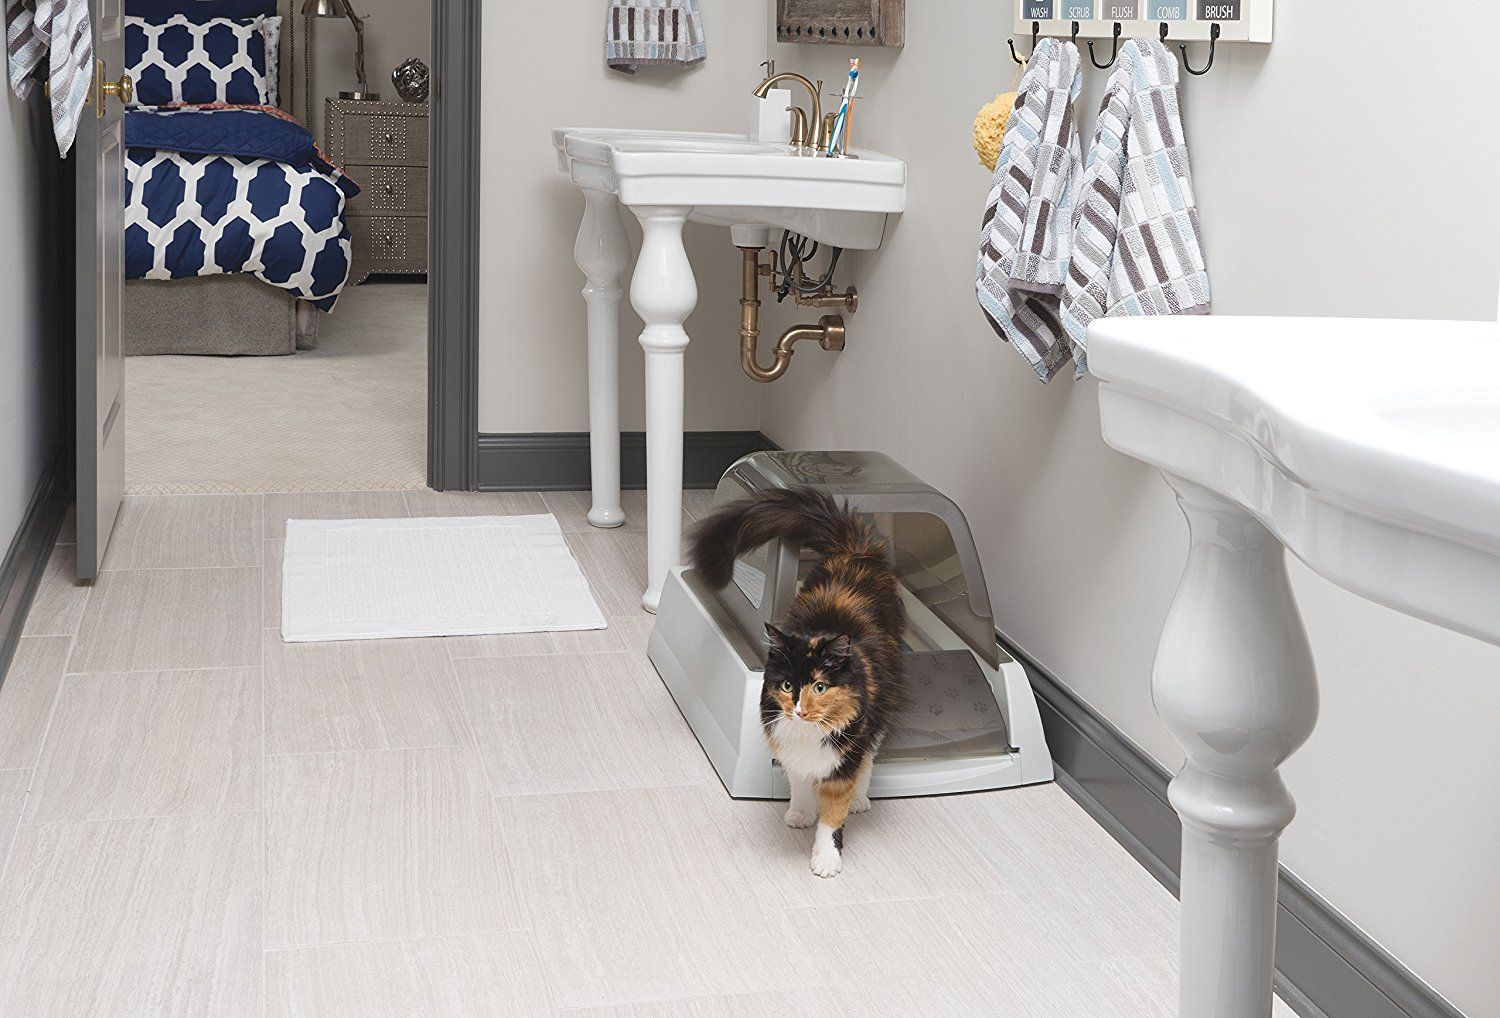 10 Best Litter Boxes For Cats To Buy In March 2020 Buyer S